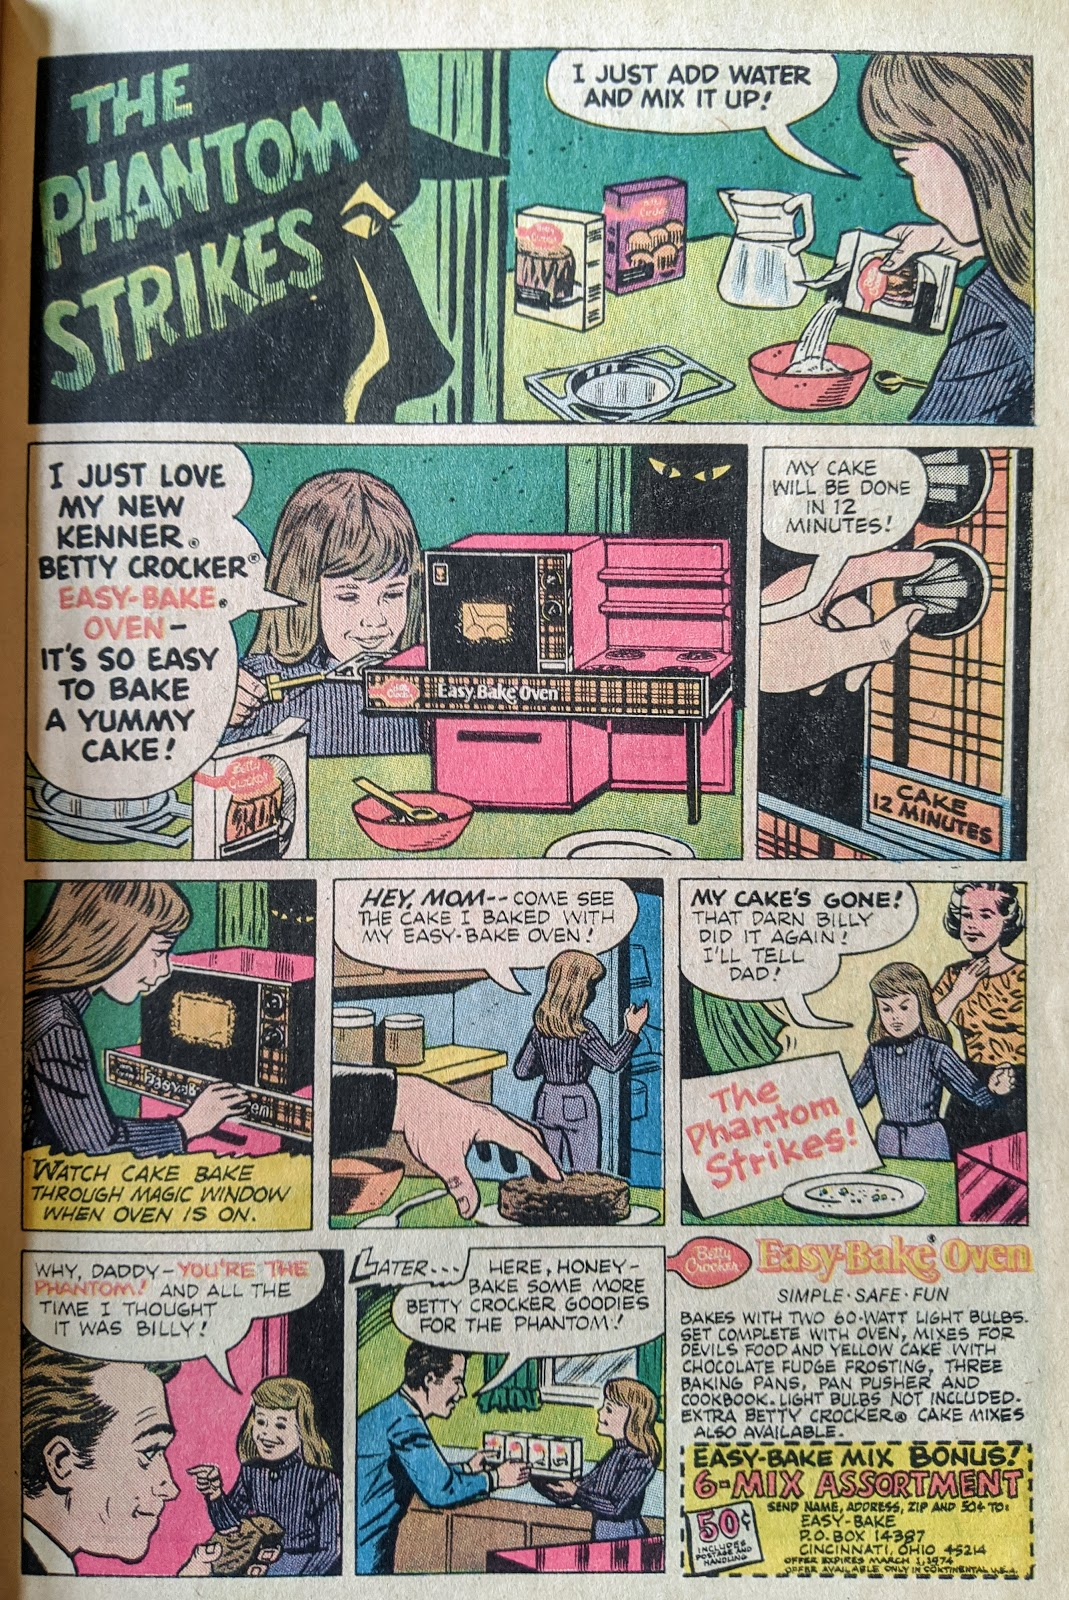 image of vintage comic book page